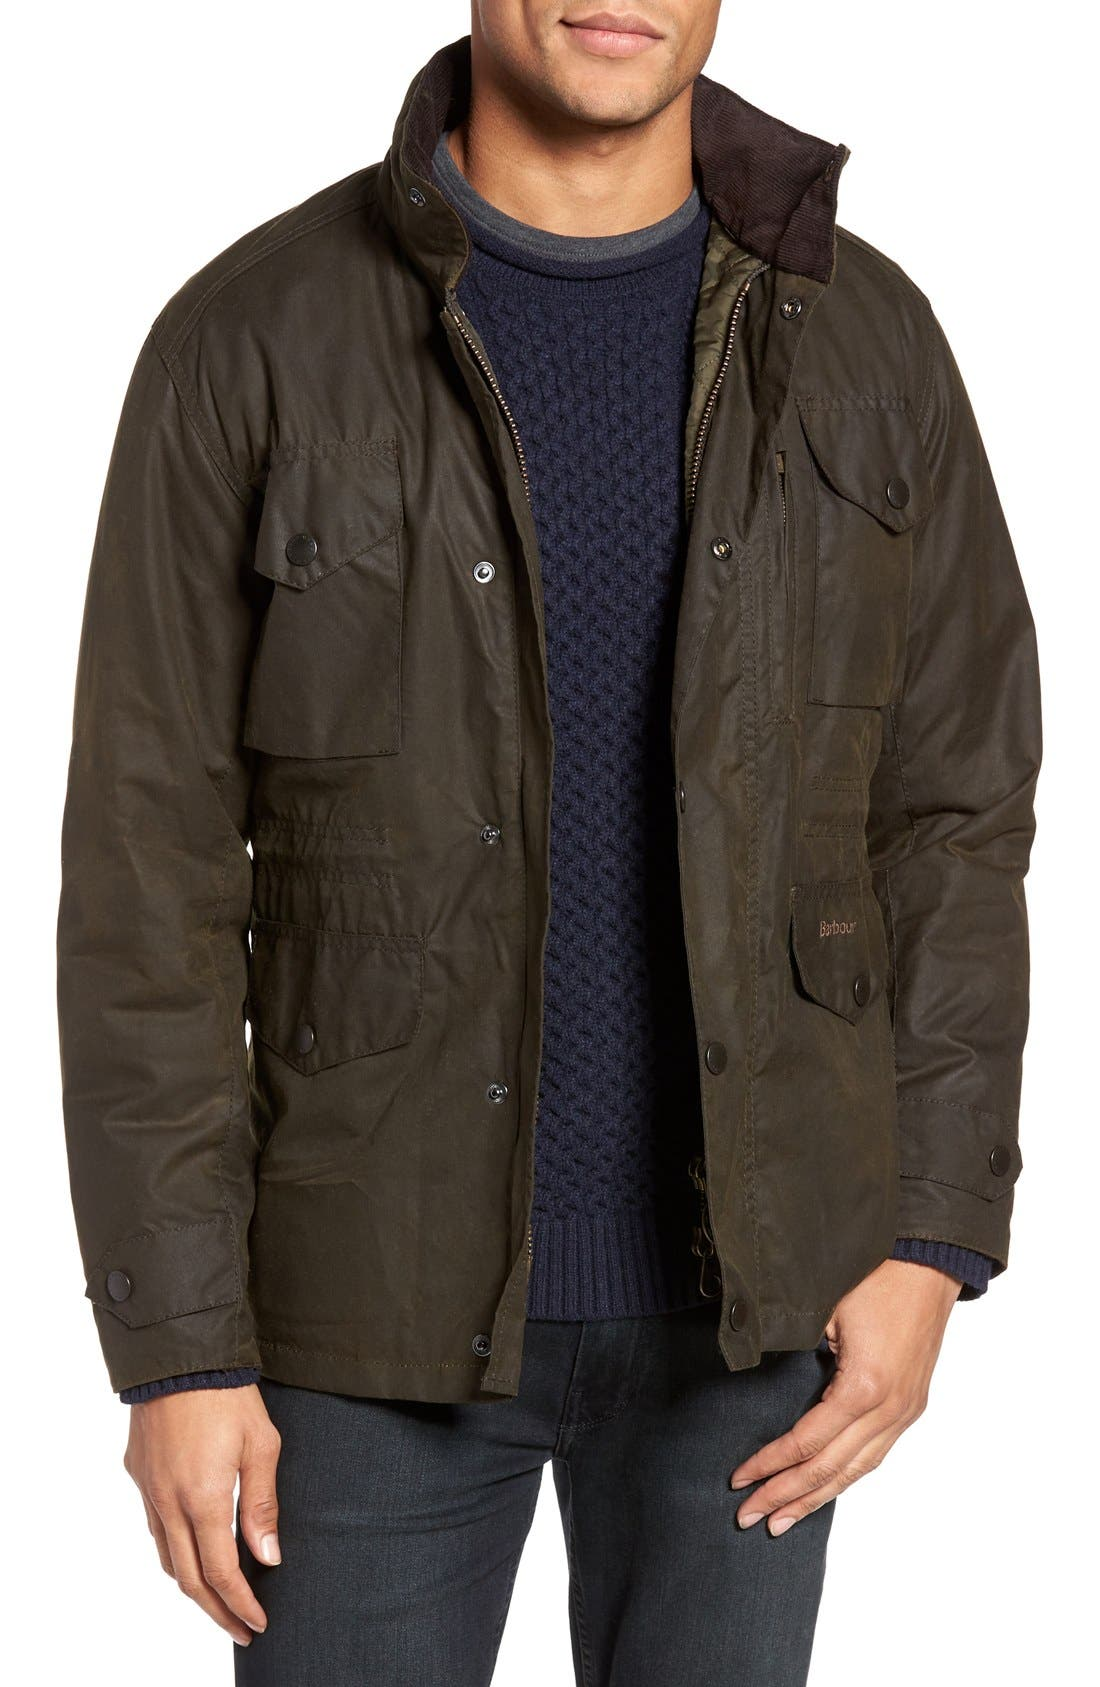 Alternate Image 1 Selected - Barbour 'Sapper' Regular Fit Waterproof Waxed Cotton Jacket